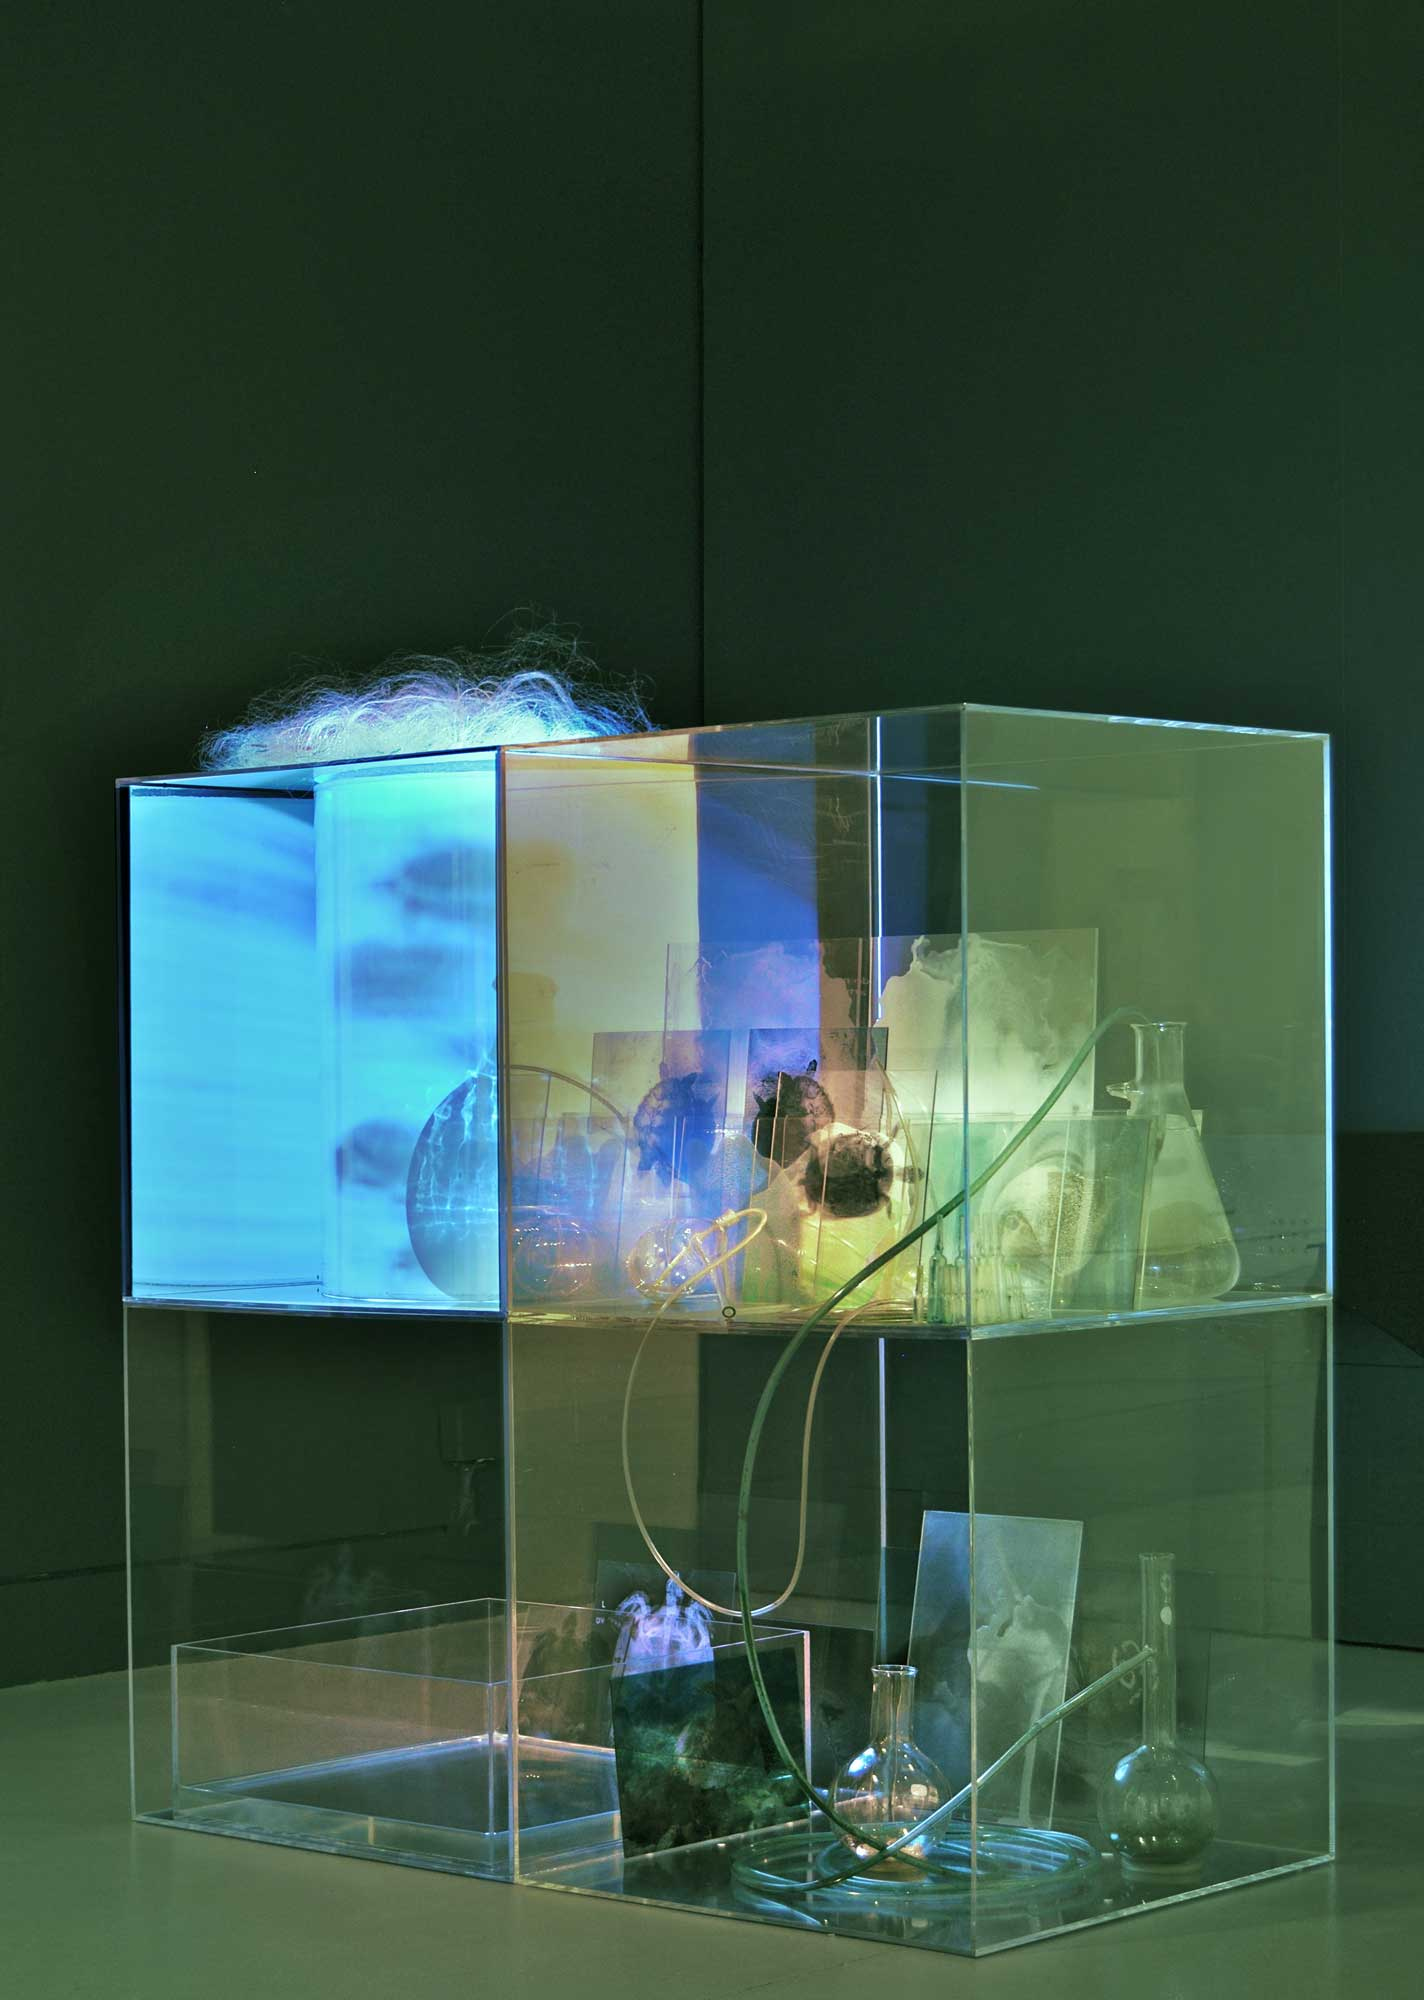 JANET LAURENCE    Stranded  2015 Glass, acrylic, duraclear, oil, pigments, water crystals and video